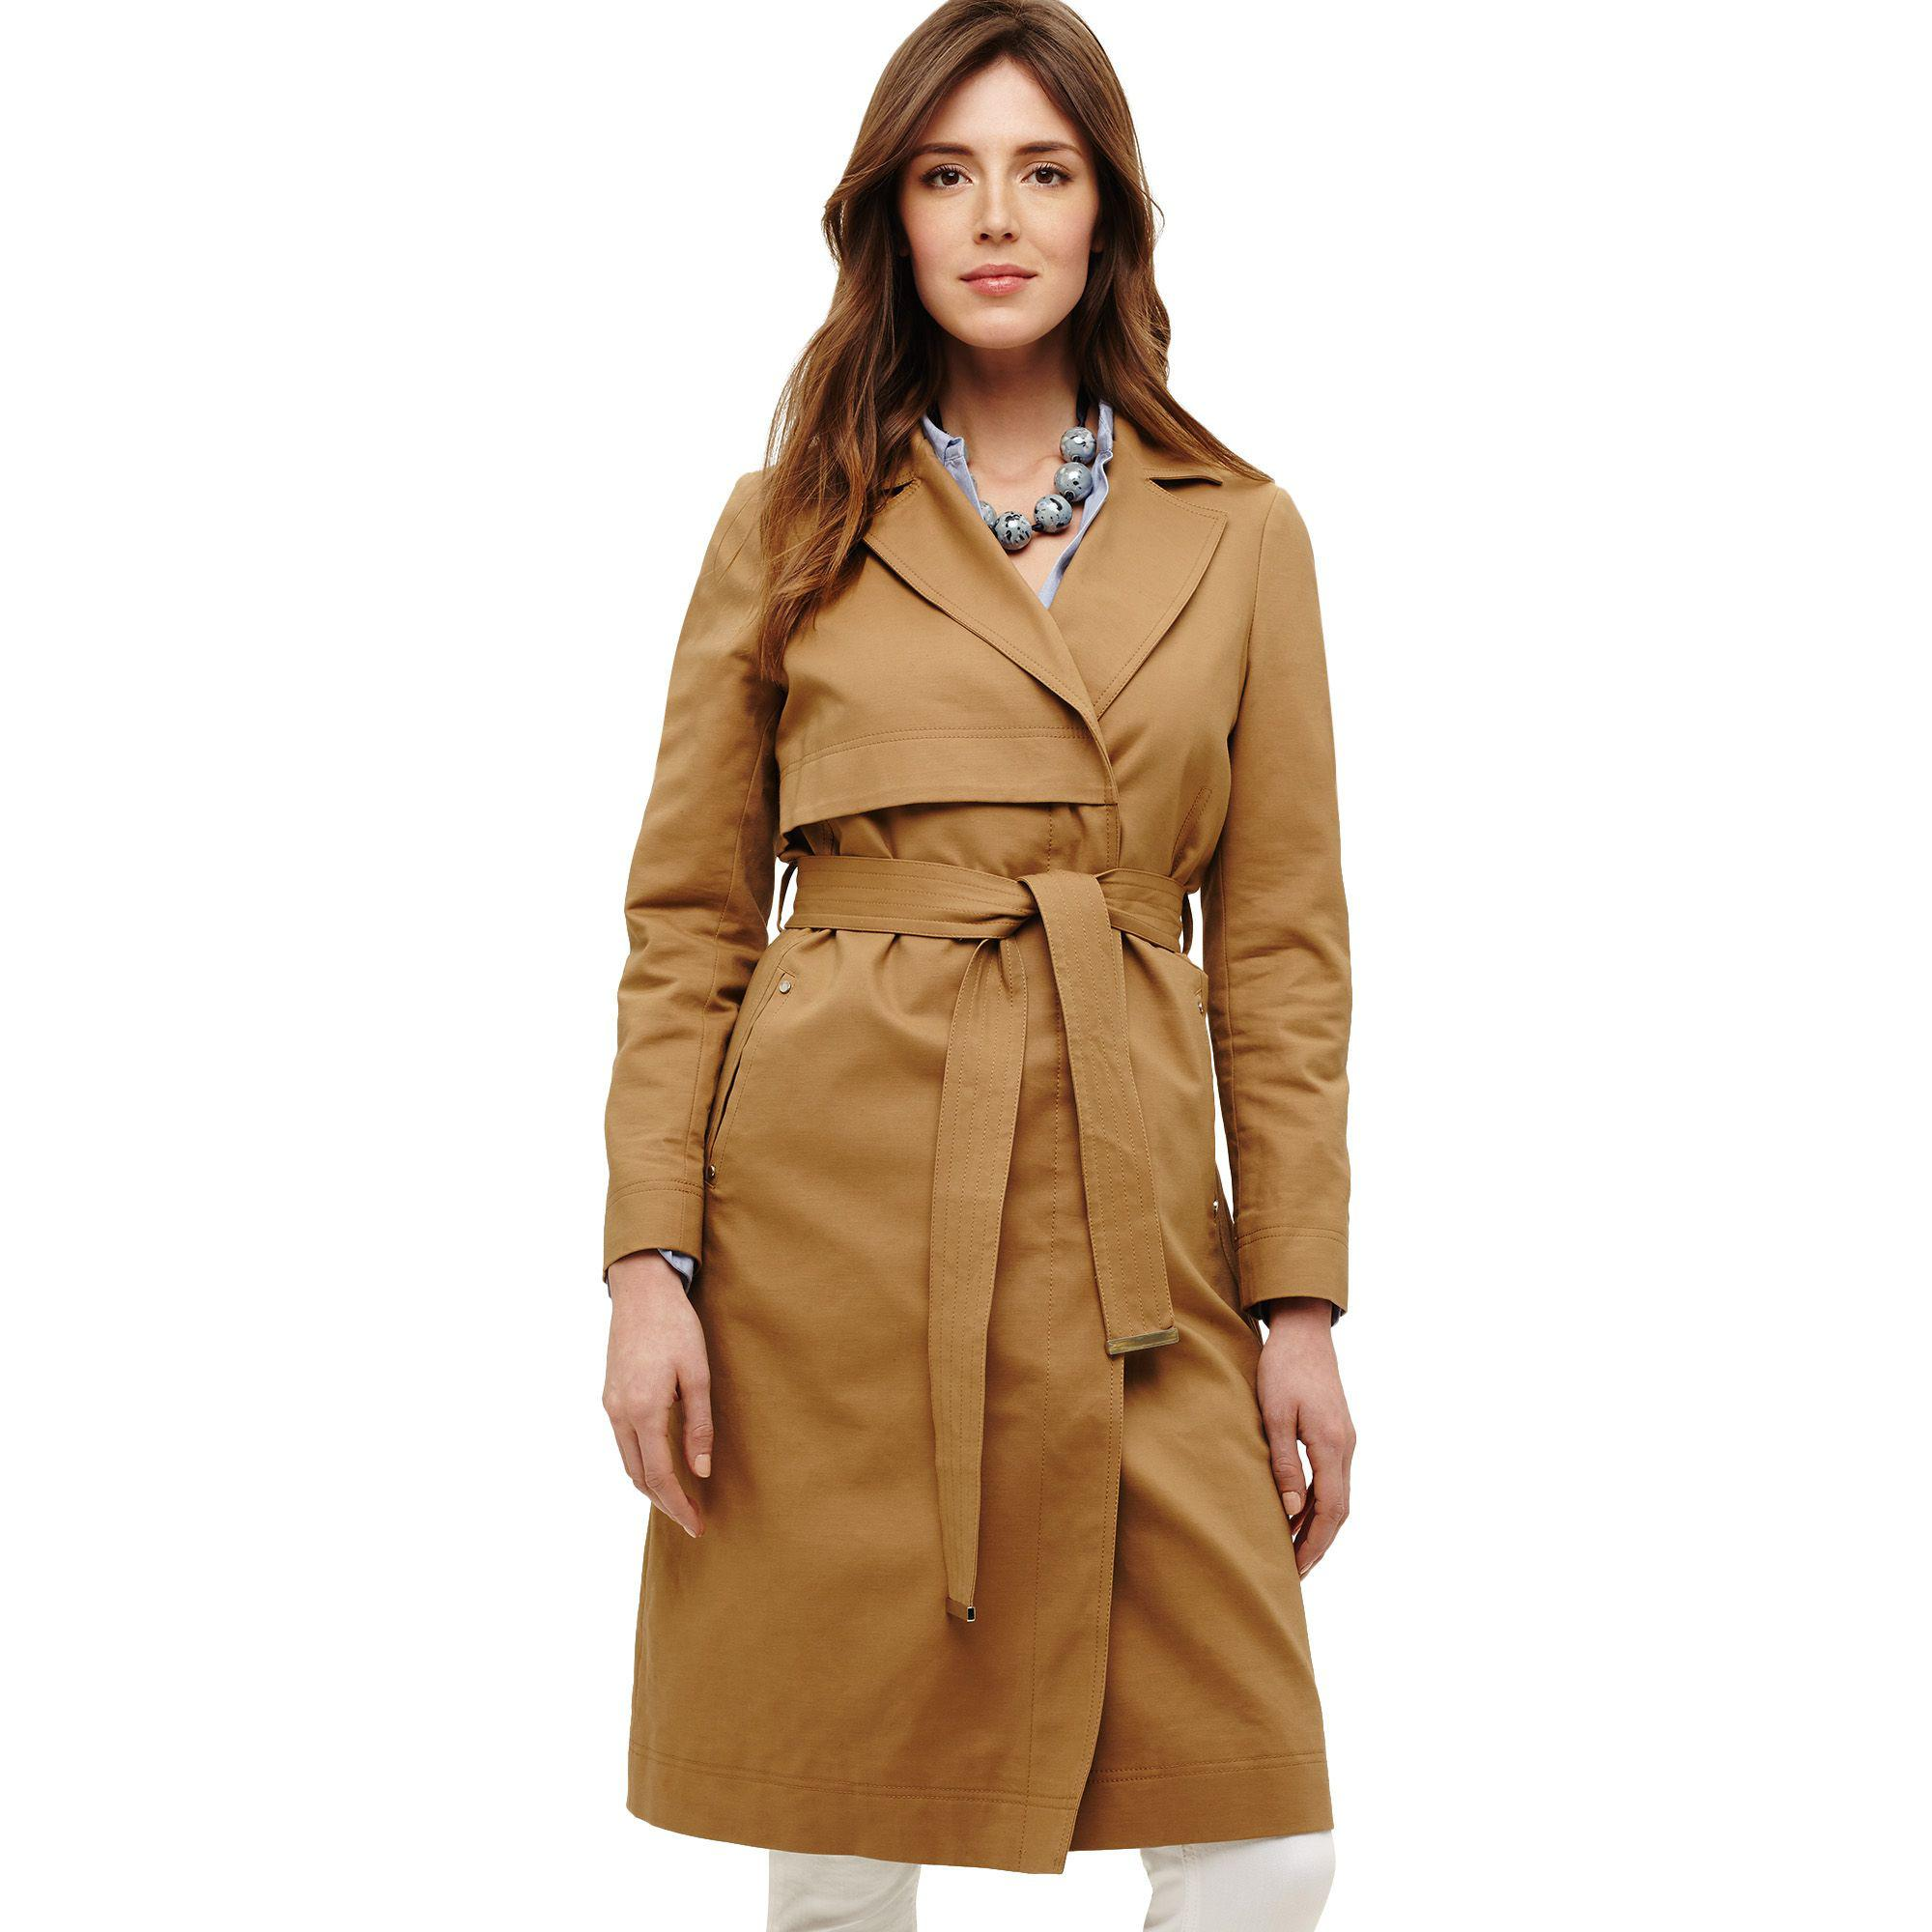 67bfb09ec6f2 Phase Eight - Natural Tayte Belted Trench Coat - Lyst. View fullscreen